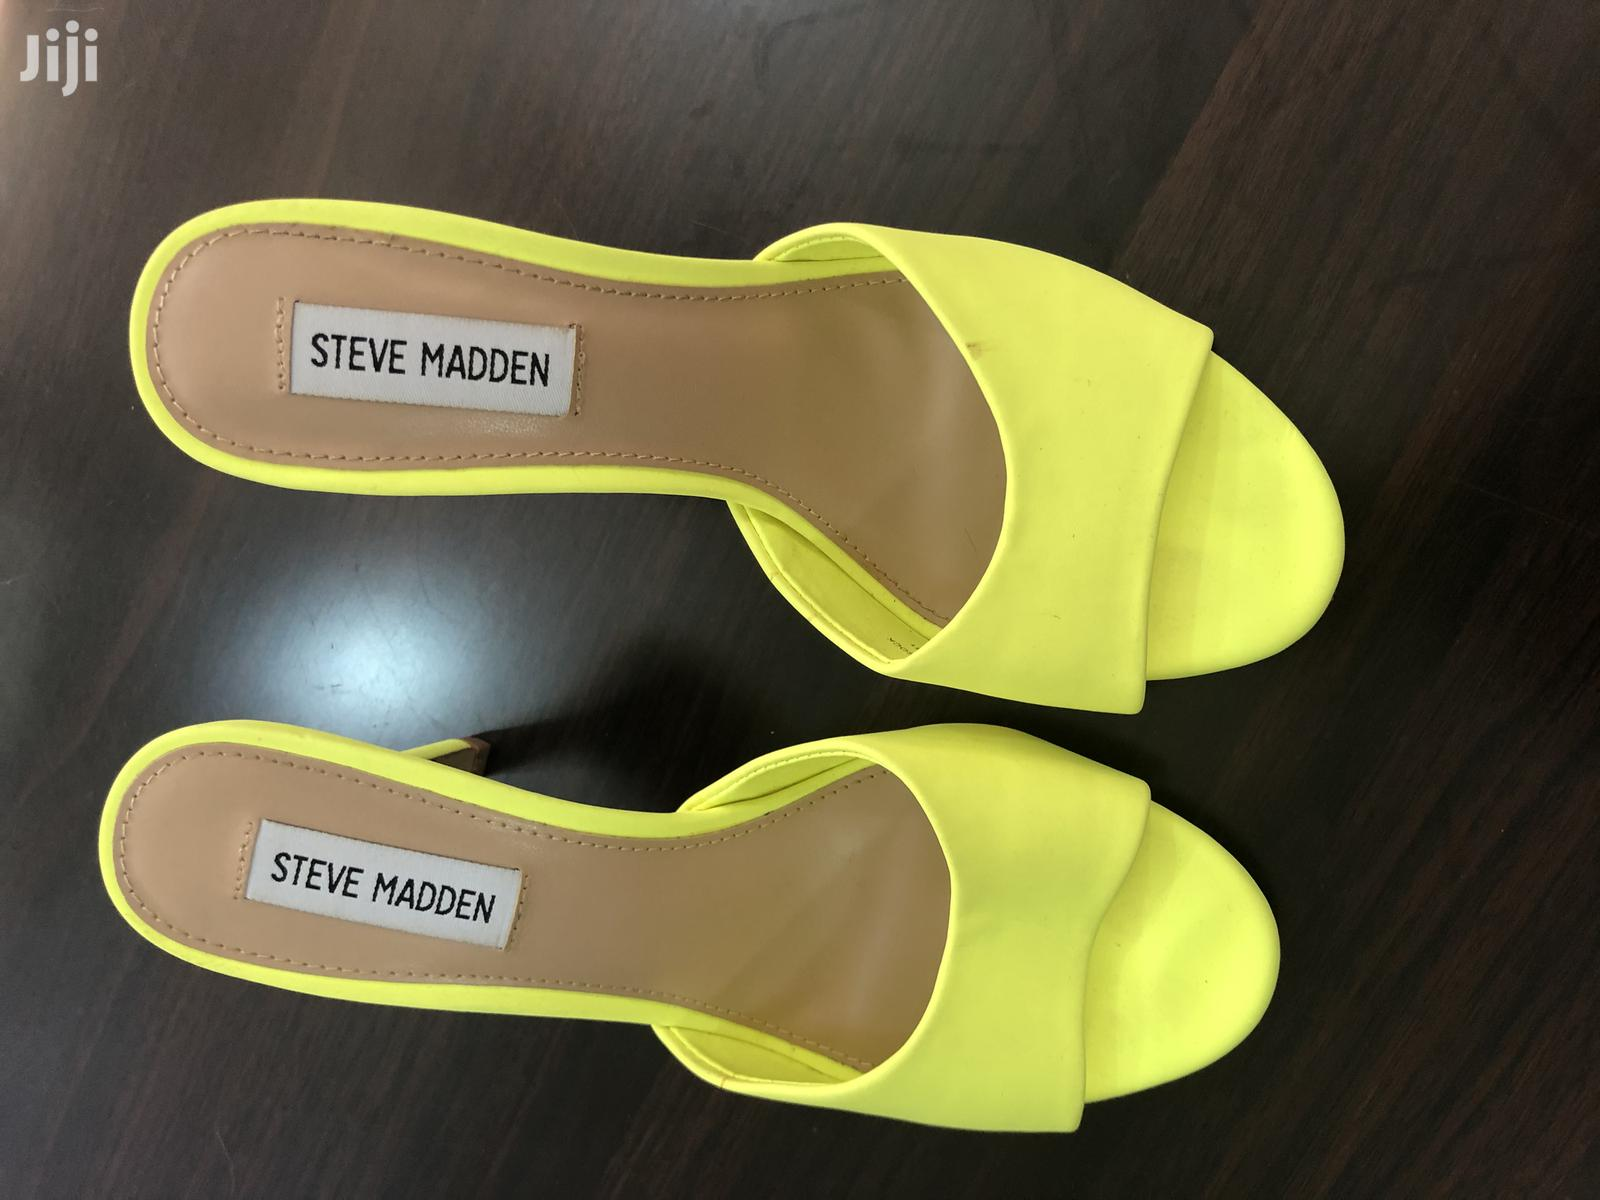 Steve Madden   Shoes for sale in East Legon, Greater Accra, Ghana